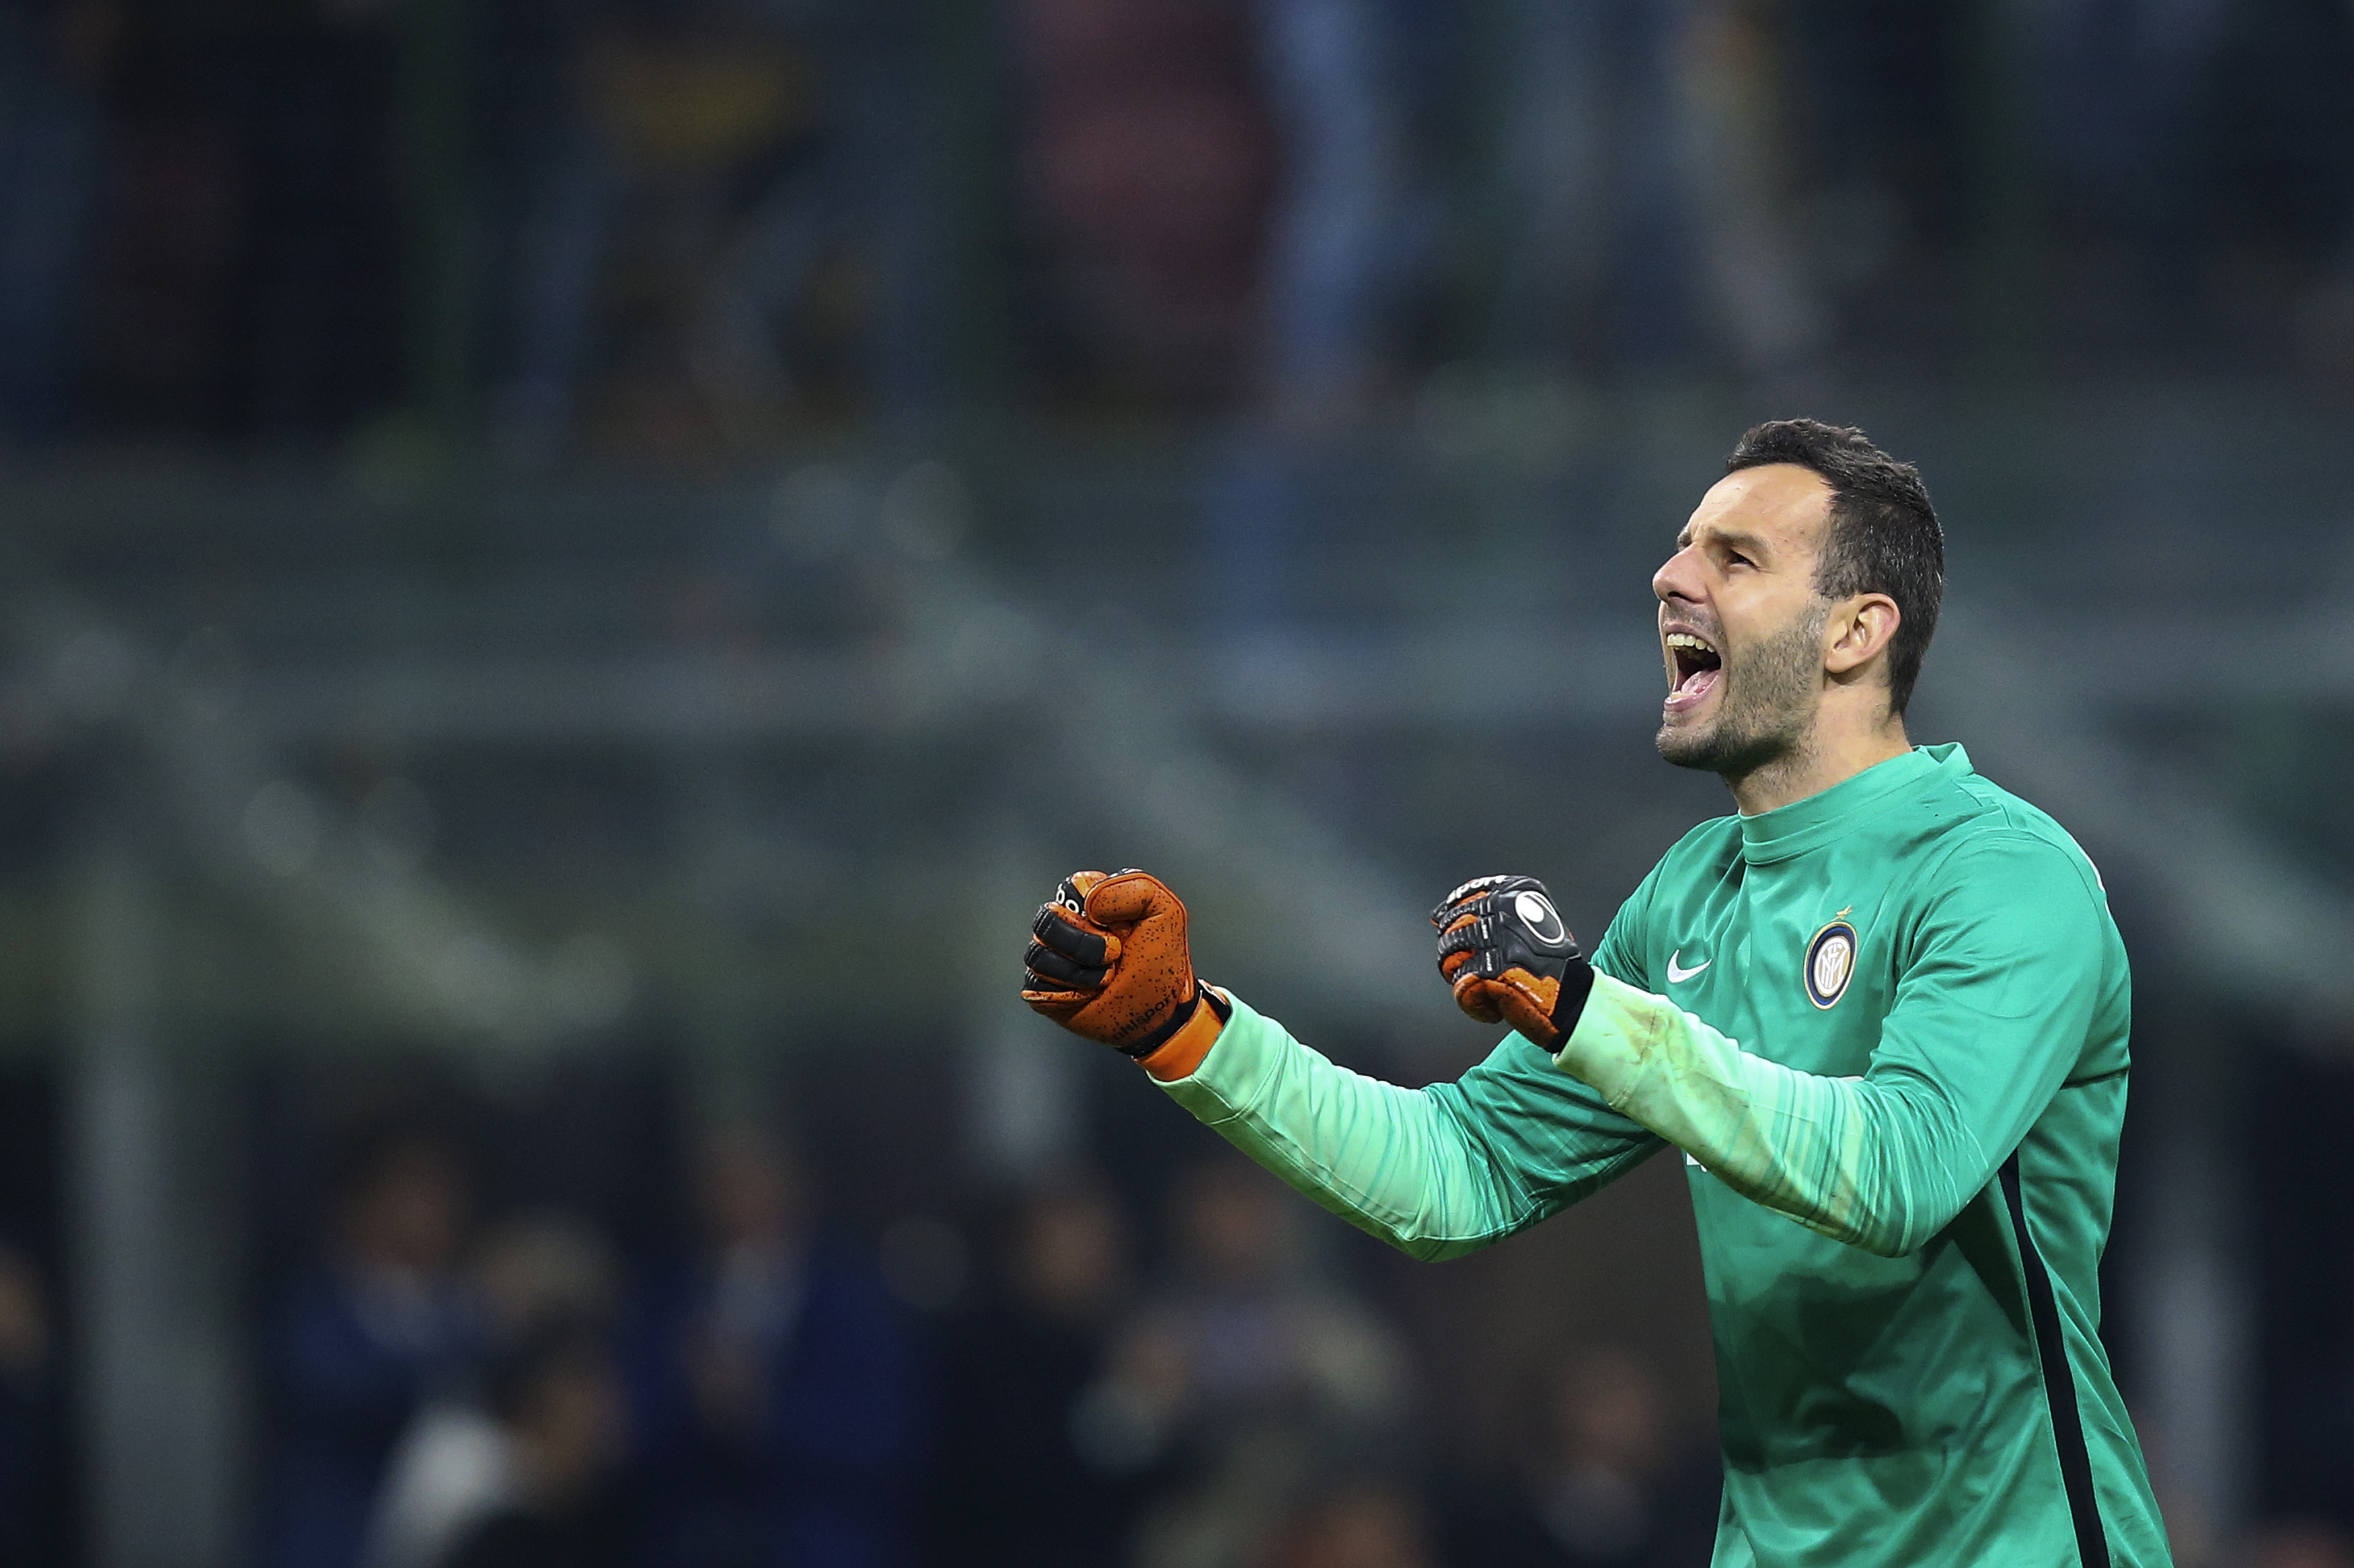 Inter Milan's goalkeeper Handanovic celebrates at the end of their Italian Serie A soccer match against AS Roma at the San Siro stadium in Milan